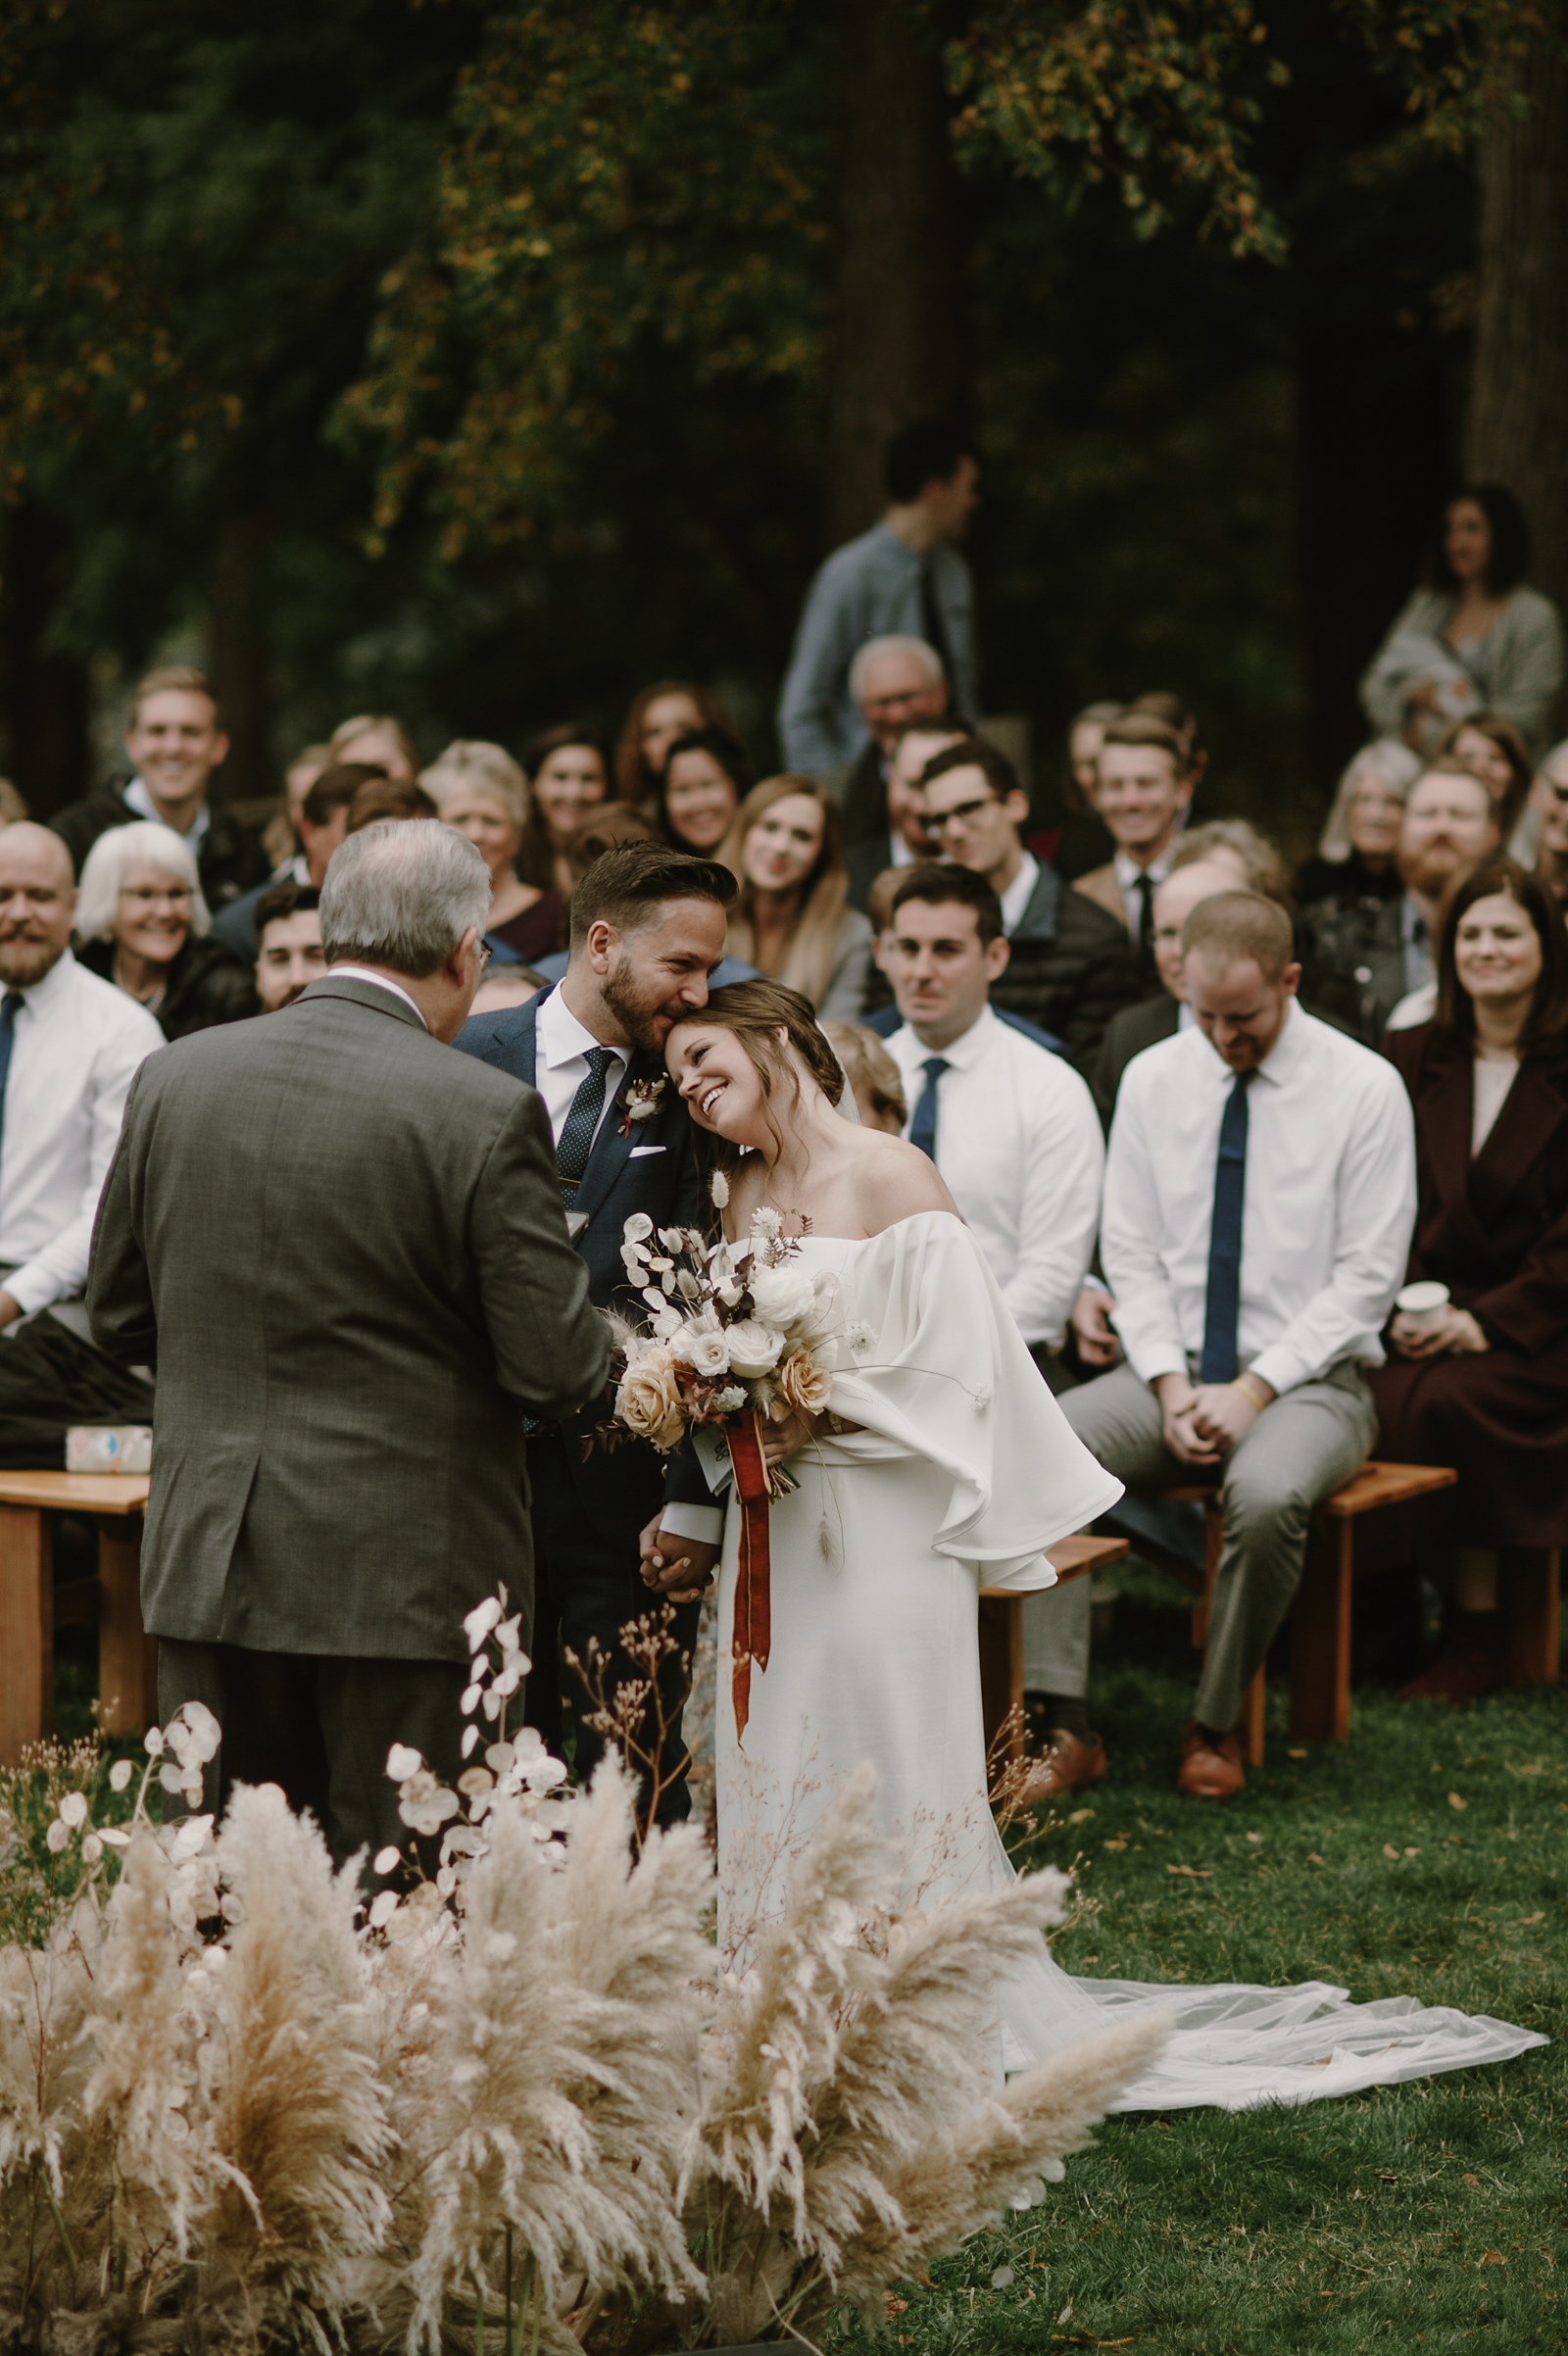 Kristen_Marie_Parker_Woodstock_Farm_Wedding052.JPG